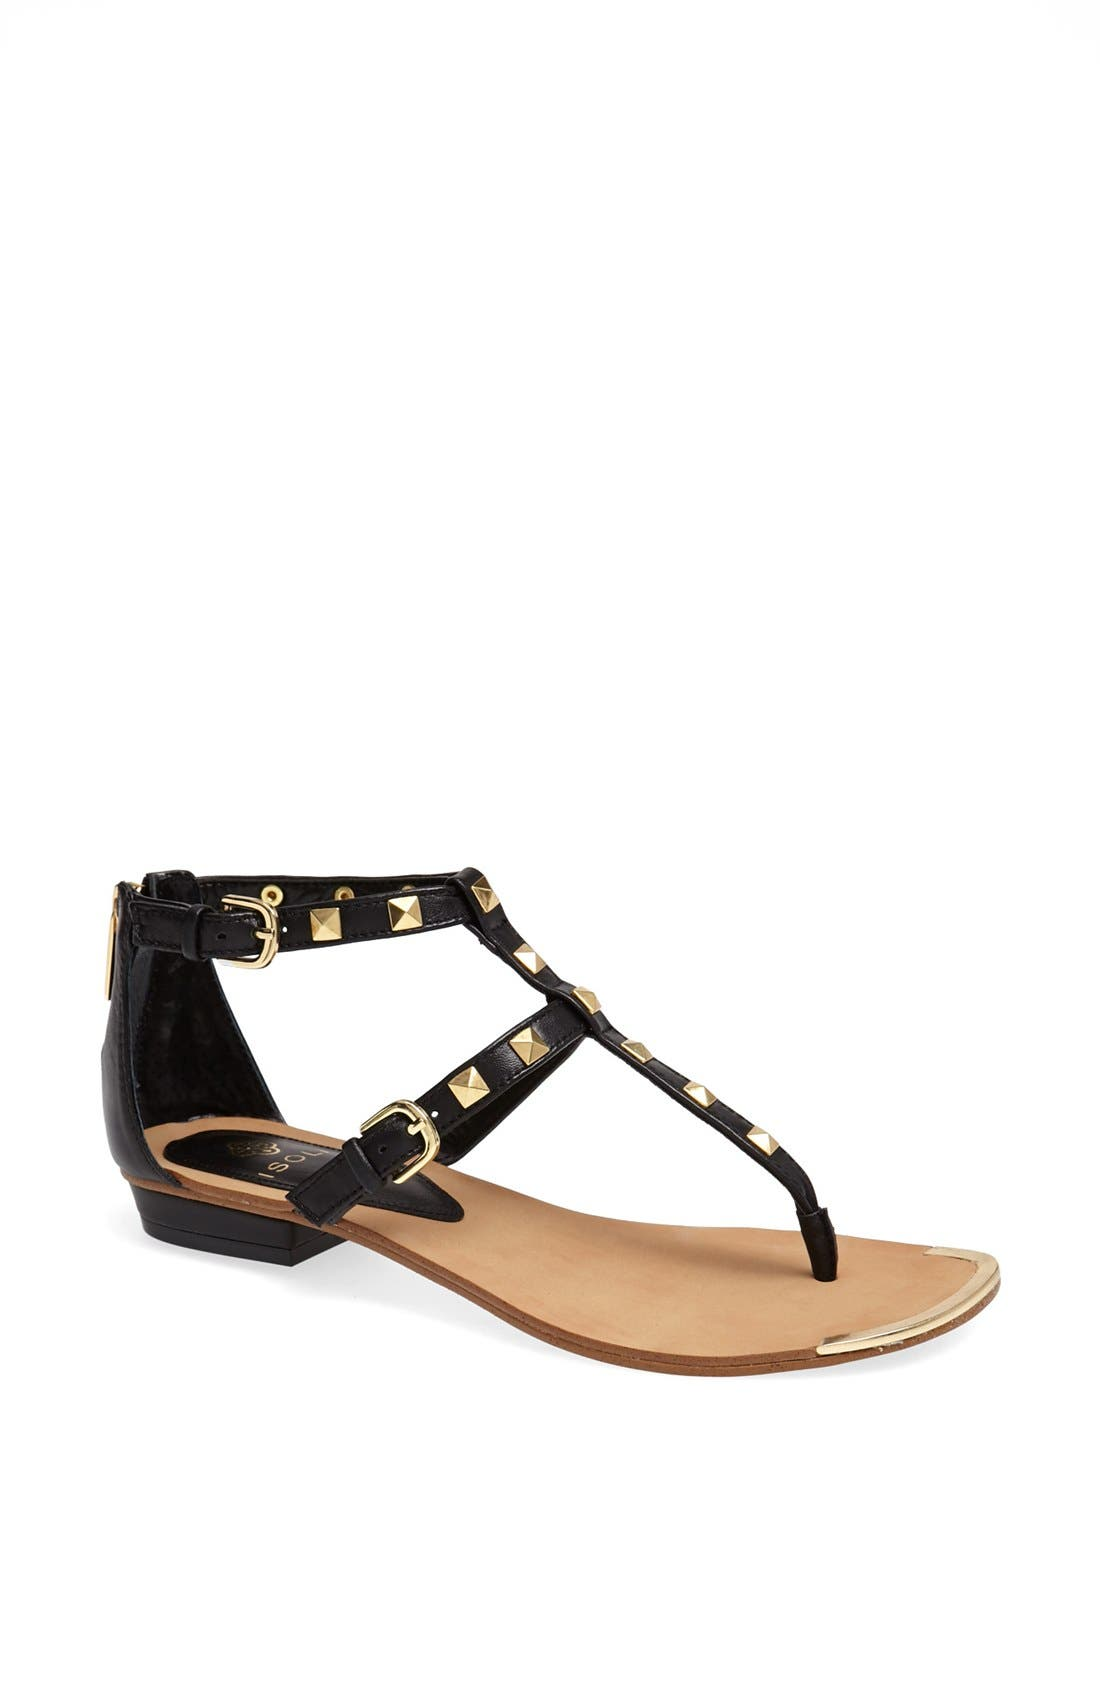 'Adie' Studded Leather Thong Sandal,                             Main thumbnail 1, color,                             001